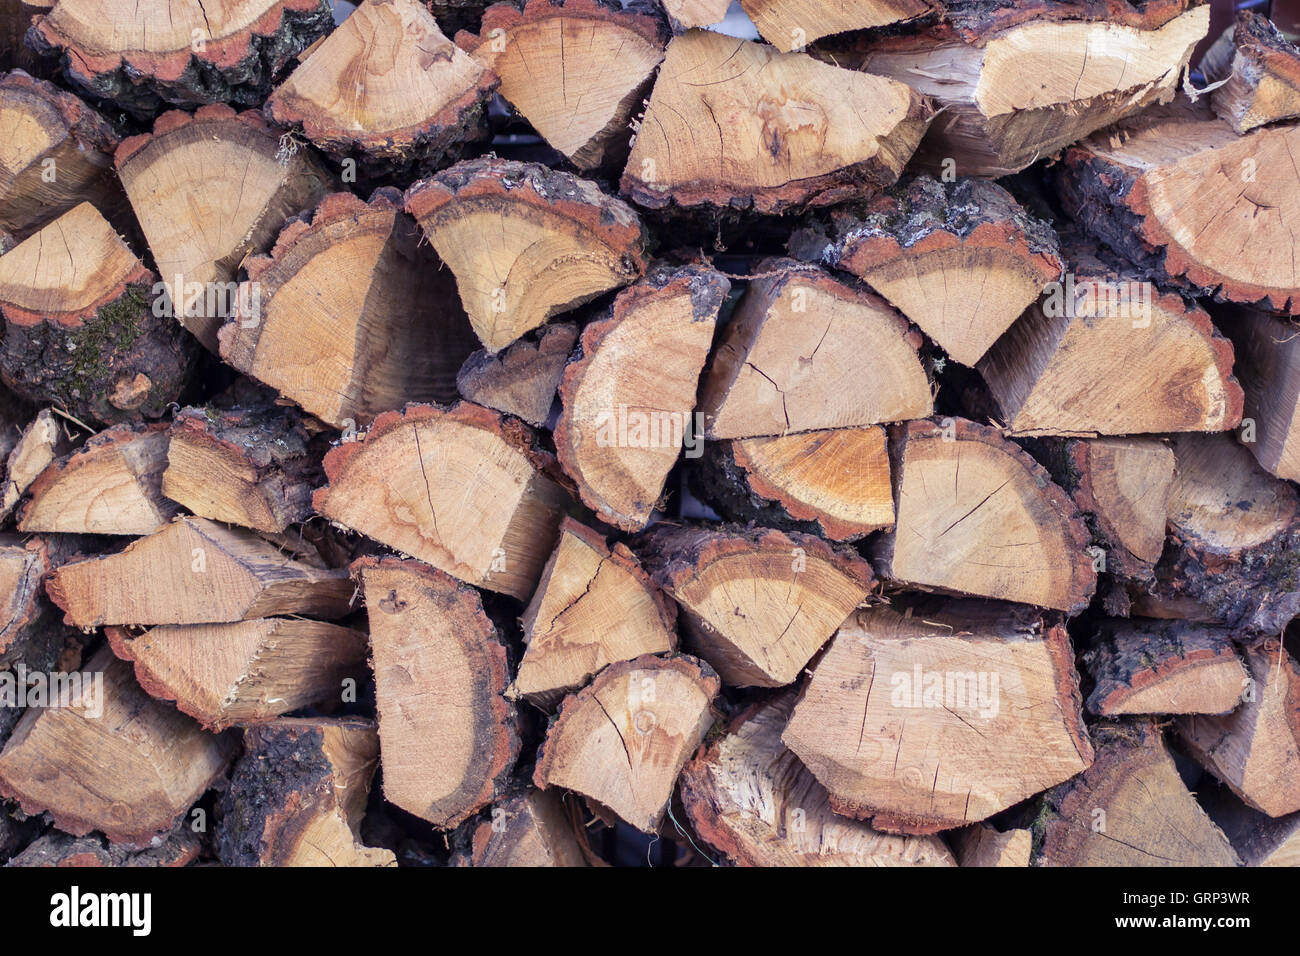 Dry wooden logs placed in cord natural background - Stock Image